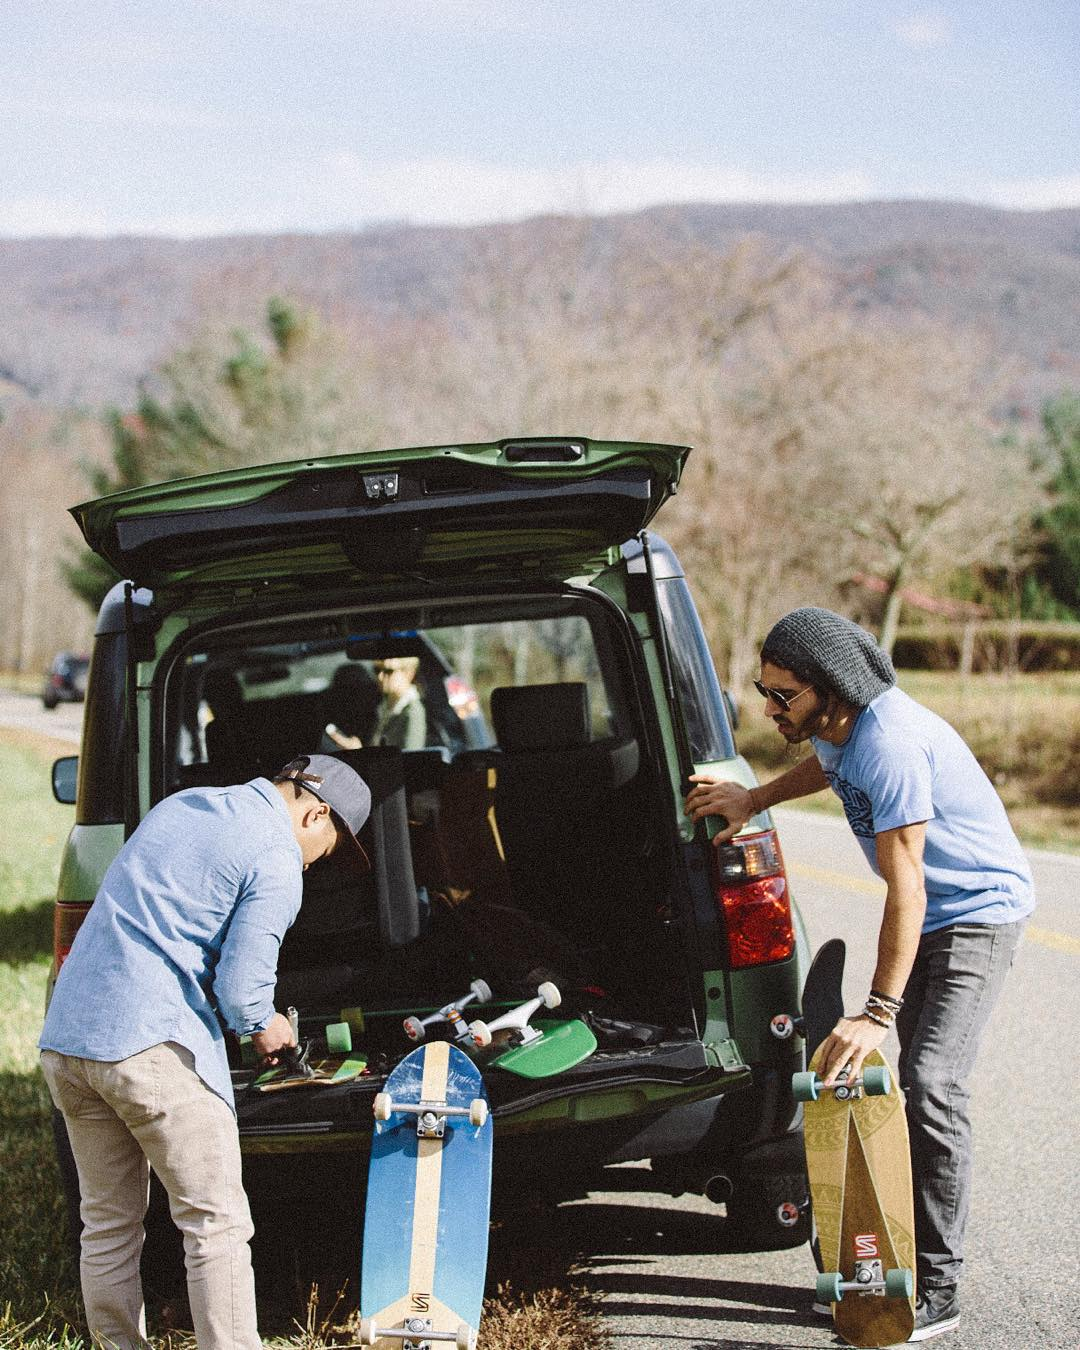 The deeper we get into the week the more we want to roadtrip.